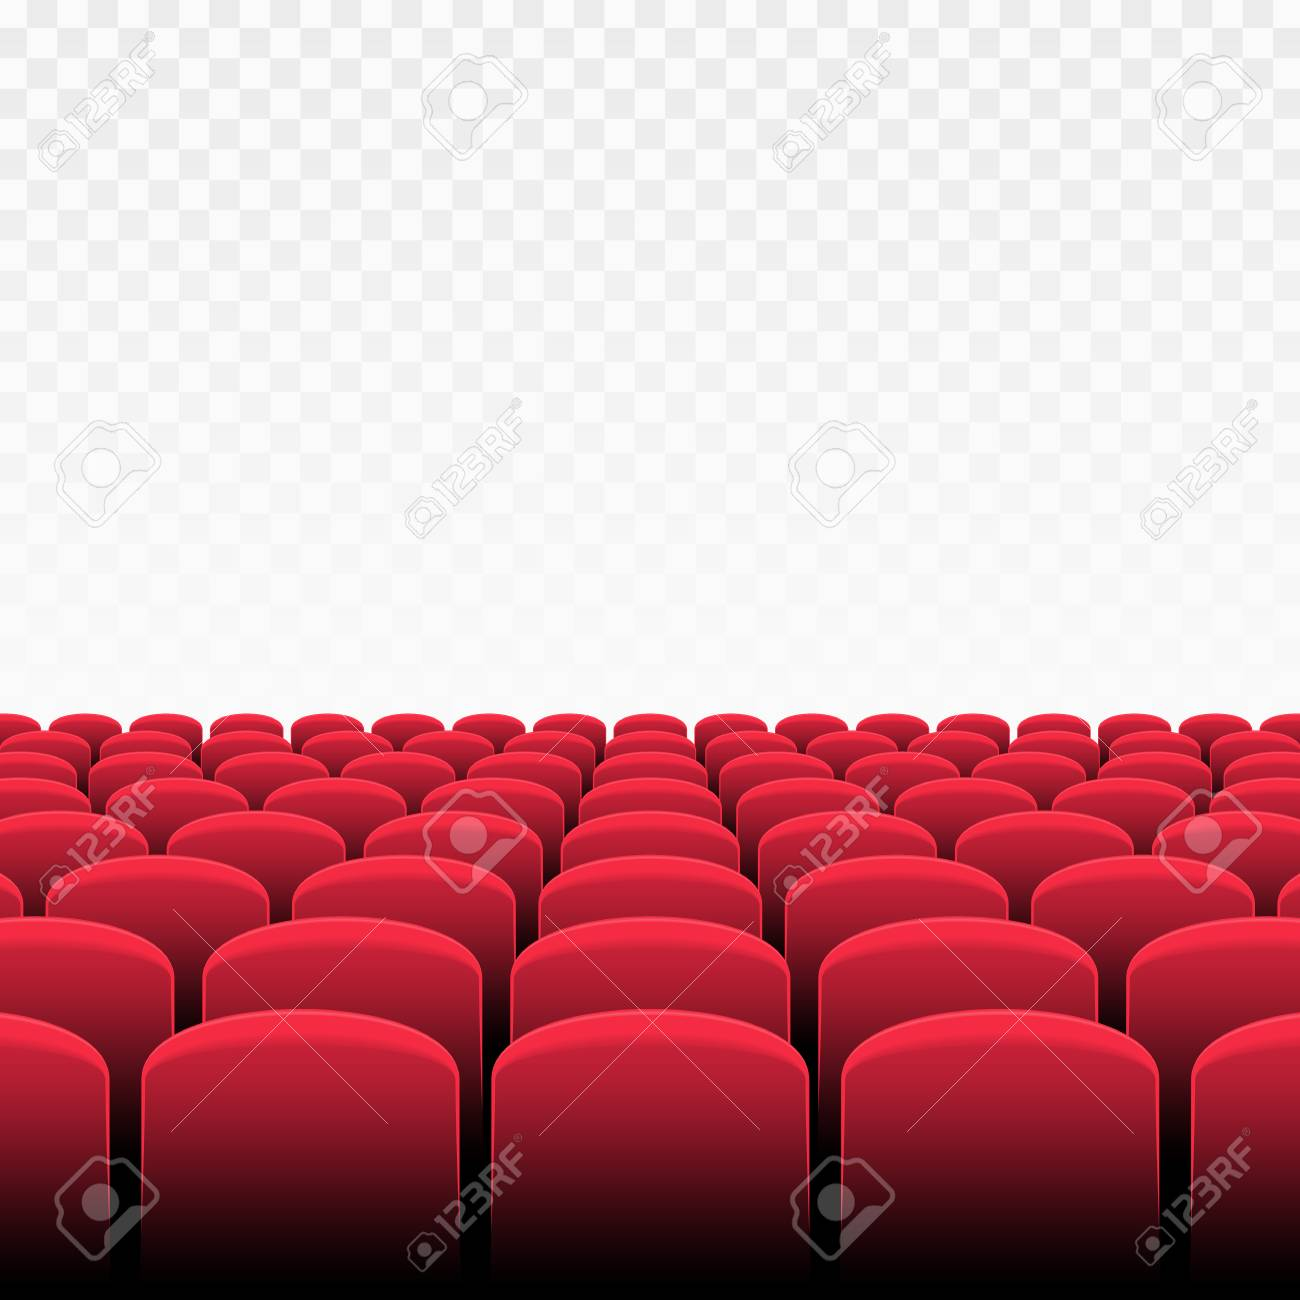 Rows Of Red Cinema Or Theater Seats On Transparent Background Royalty Free Cliparts Vectors And Stock Illustration Image 92745936